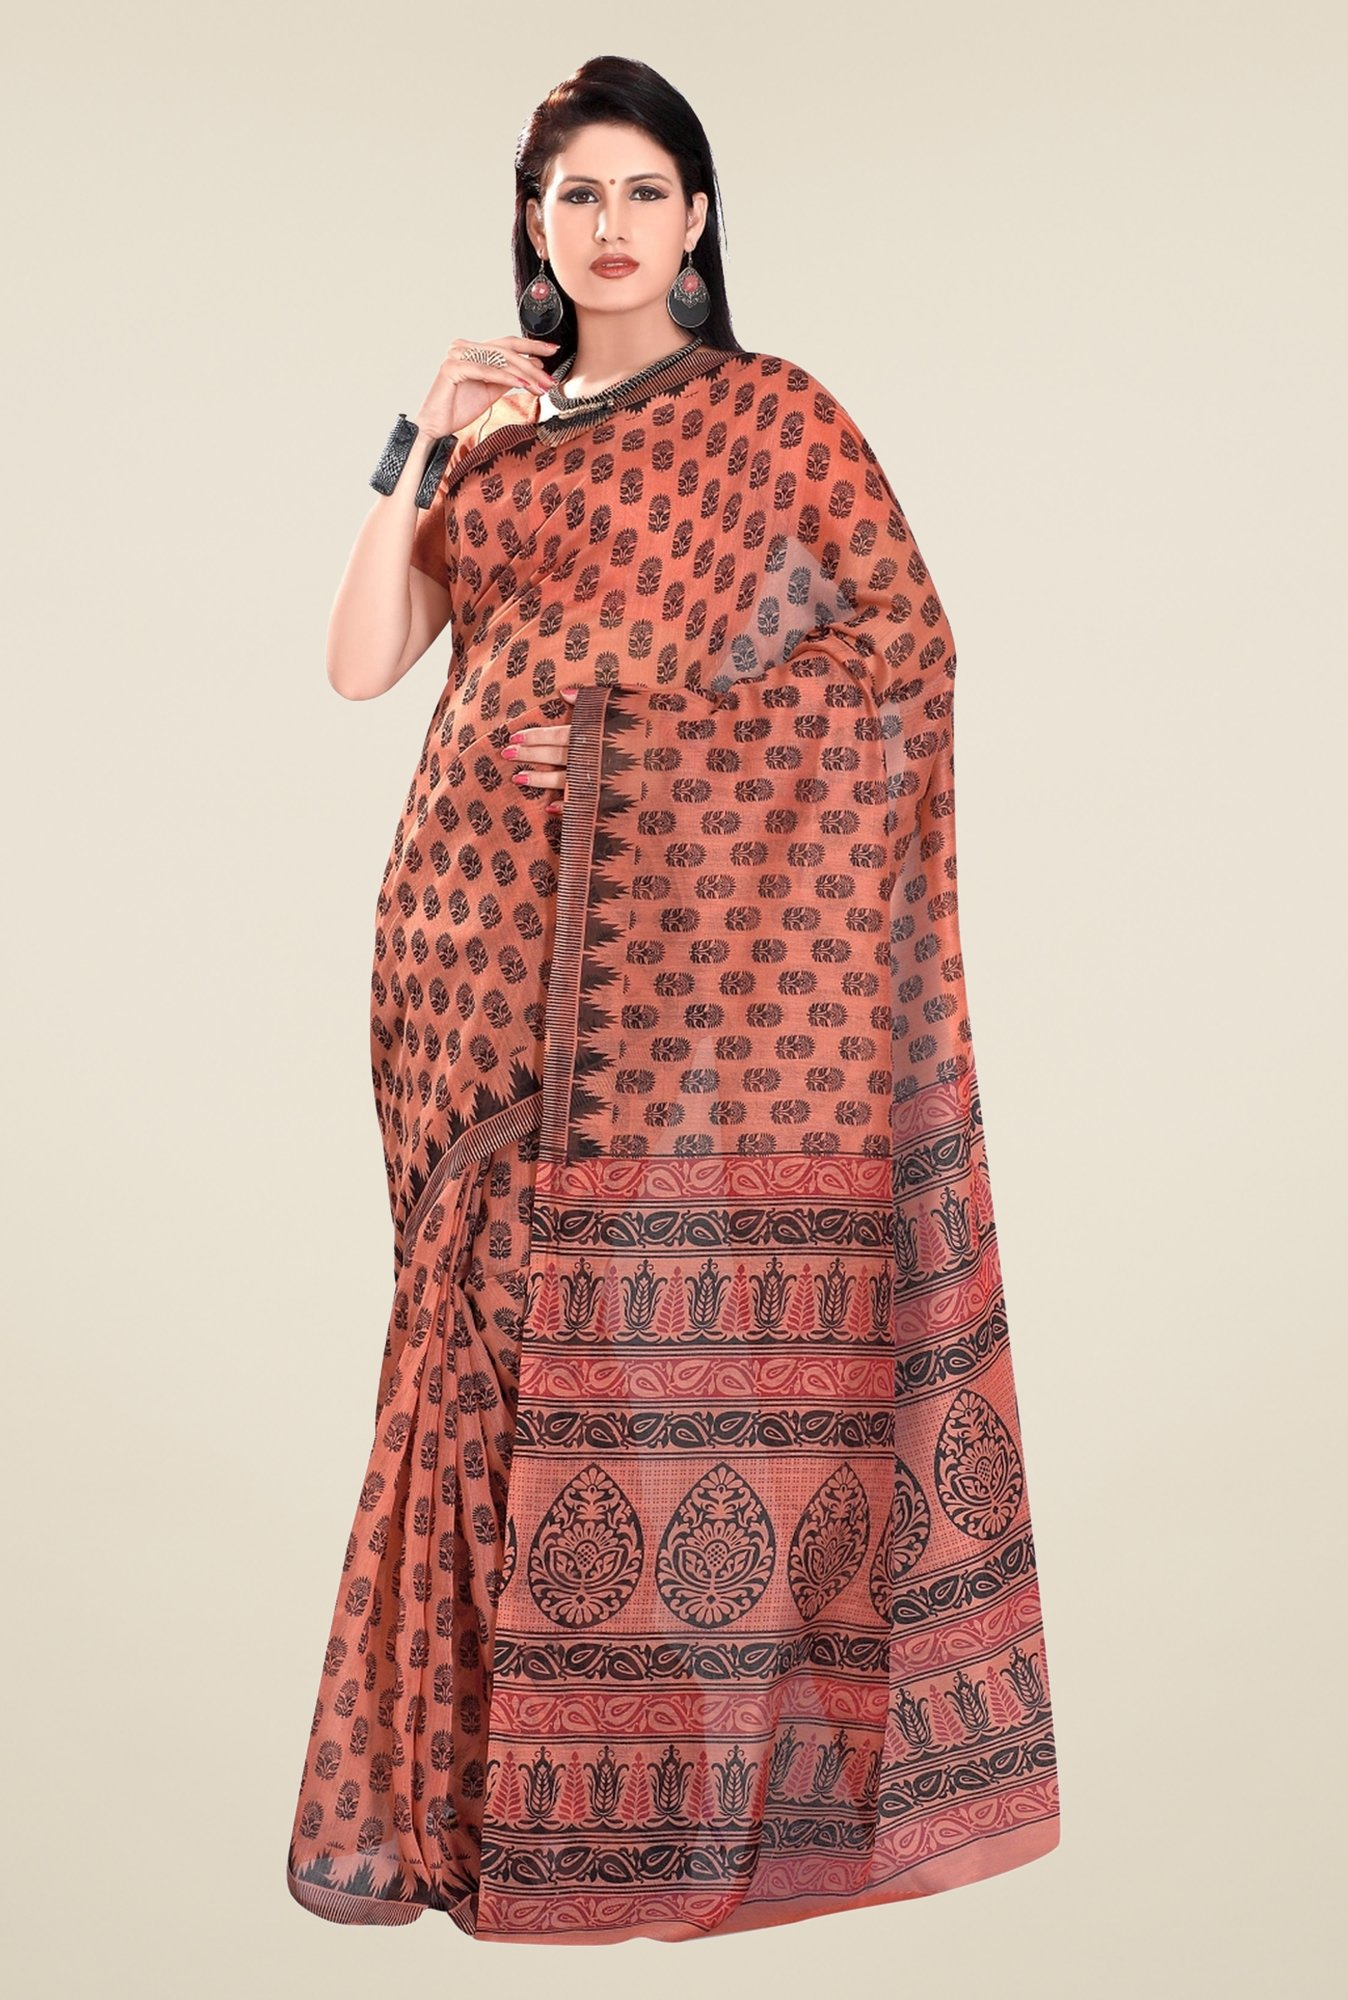 Triveni Brown Printed Blended Cotton Saree